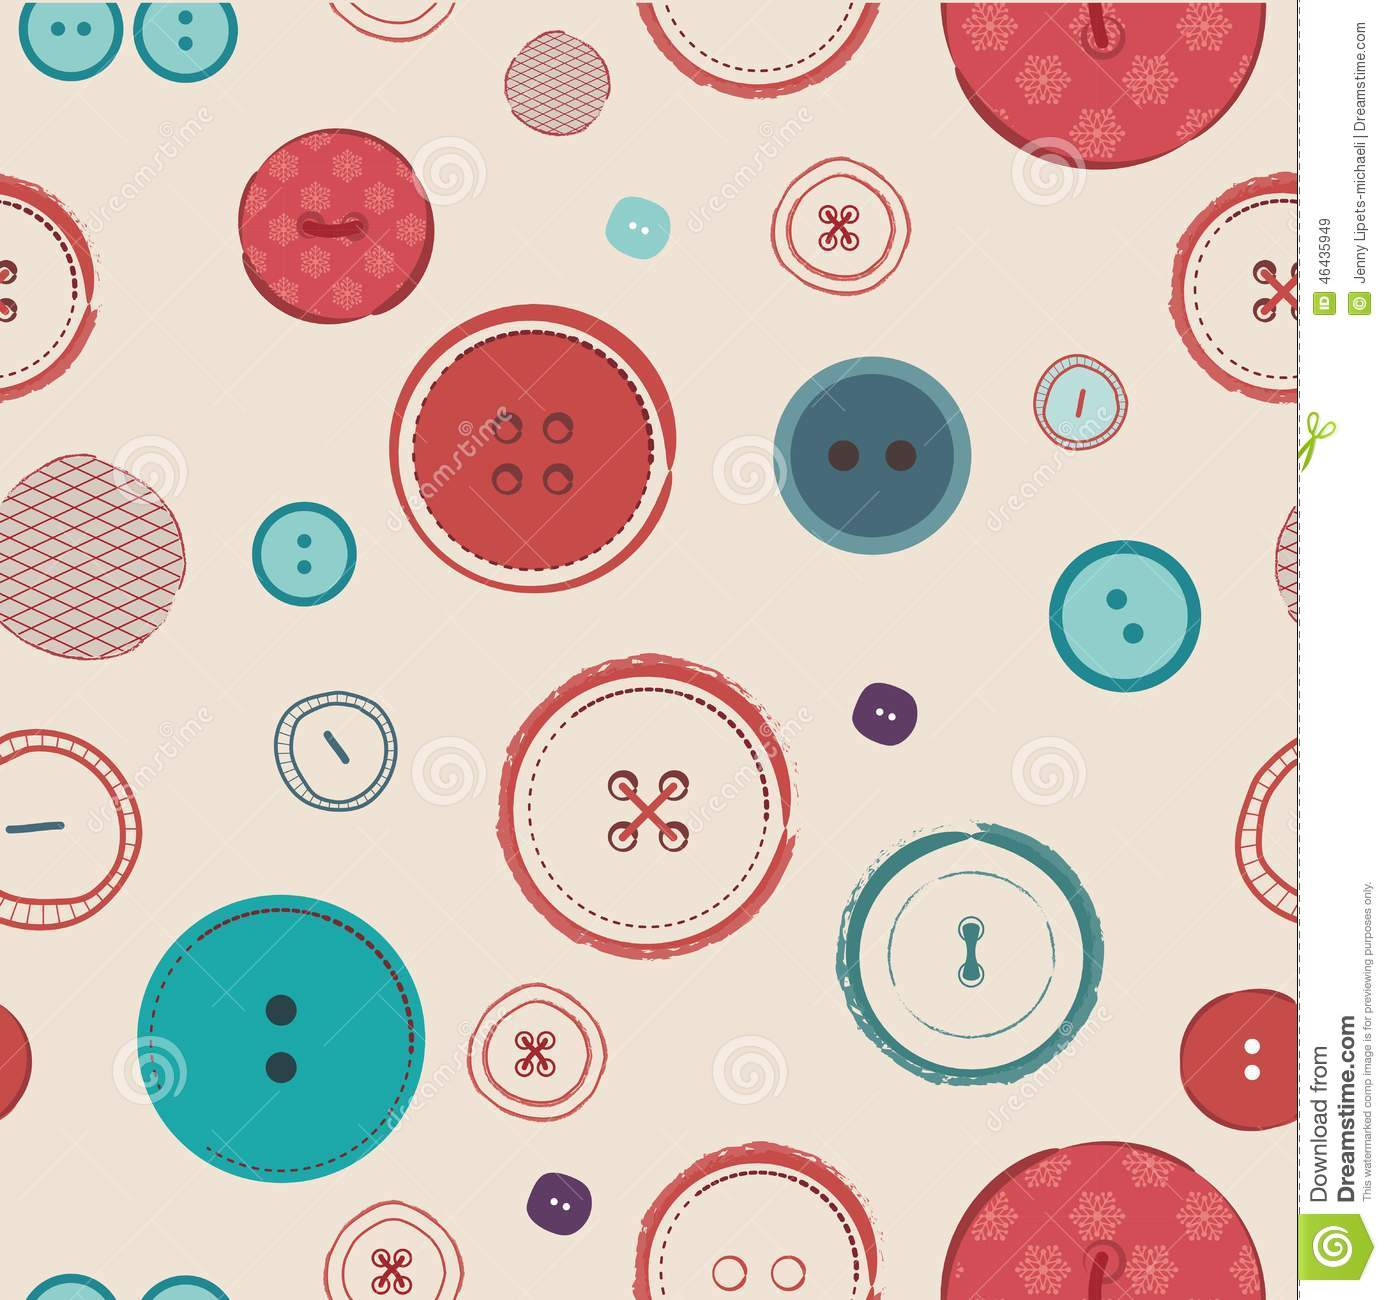 Fall Wallpaper Cartoon Retro Vector Seamless Pattern Bright Colors Buttons On